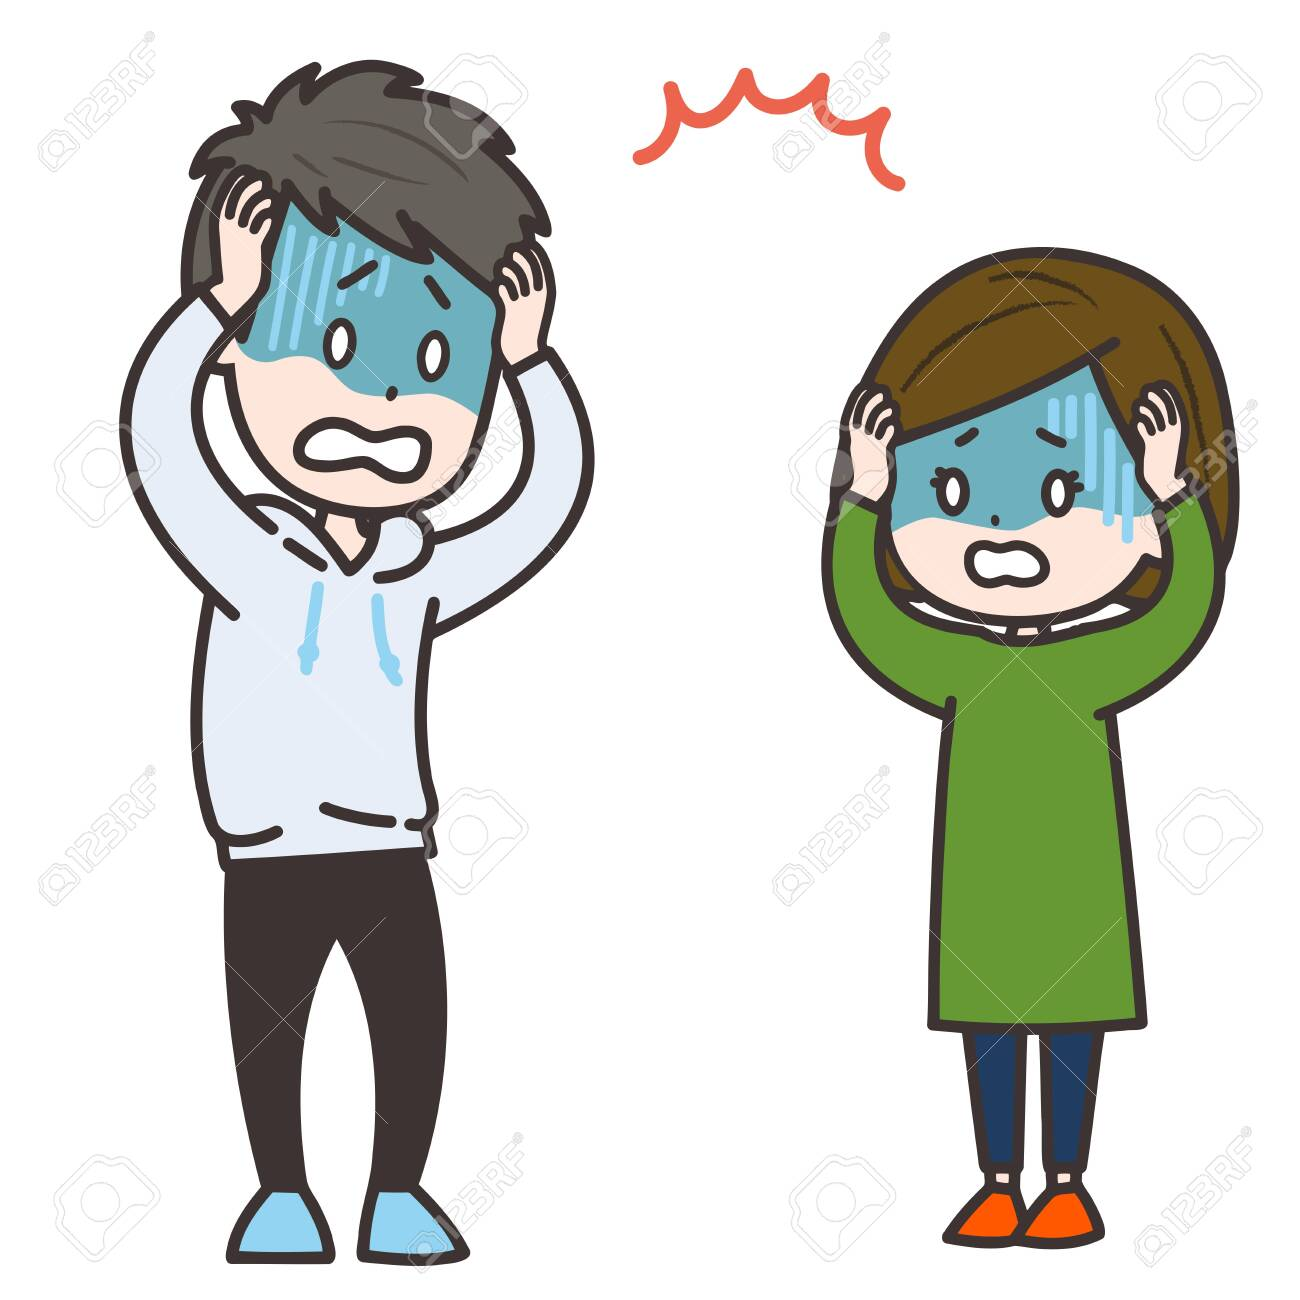 It is an illustration of a man and a woman who panic. Vector image. - 153013648